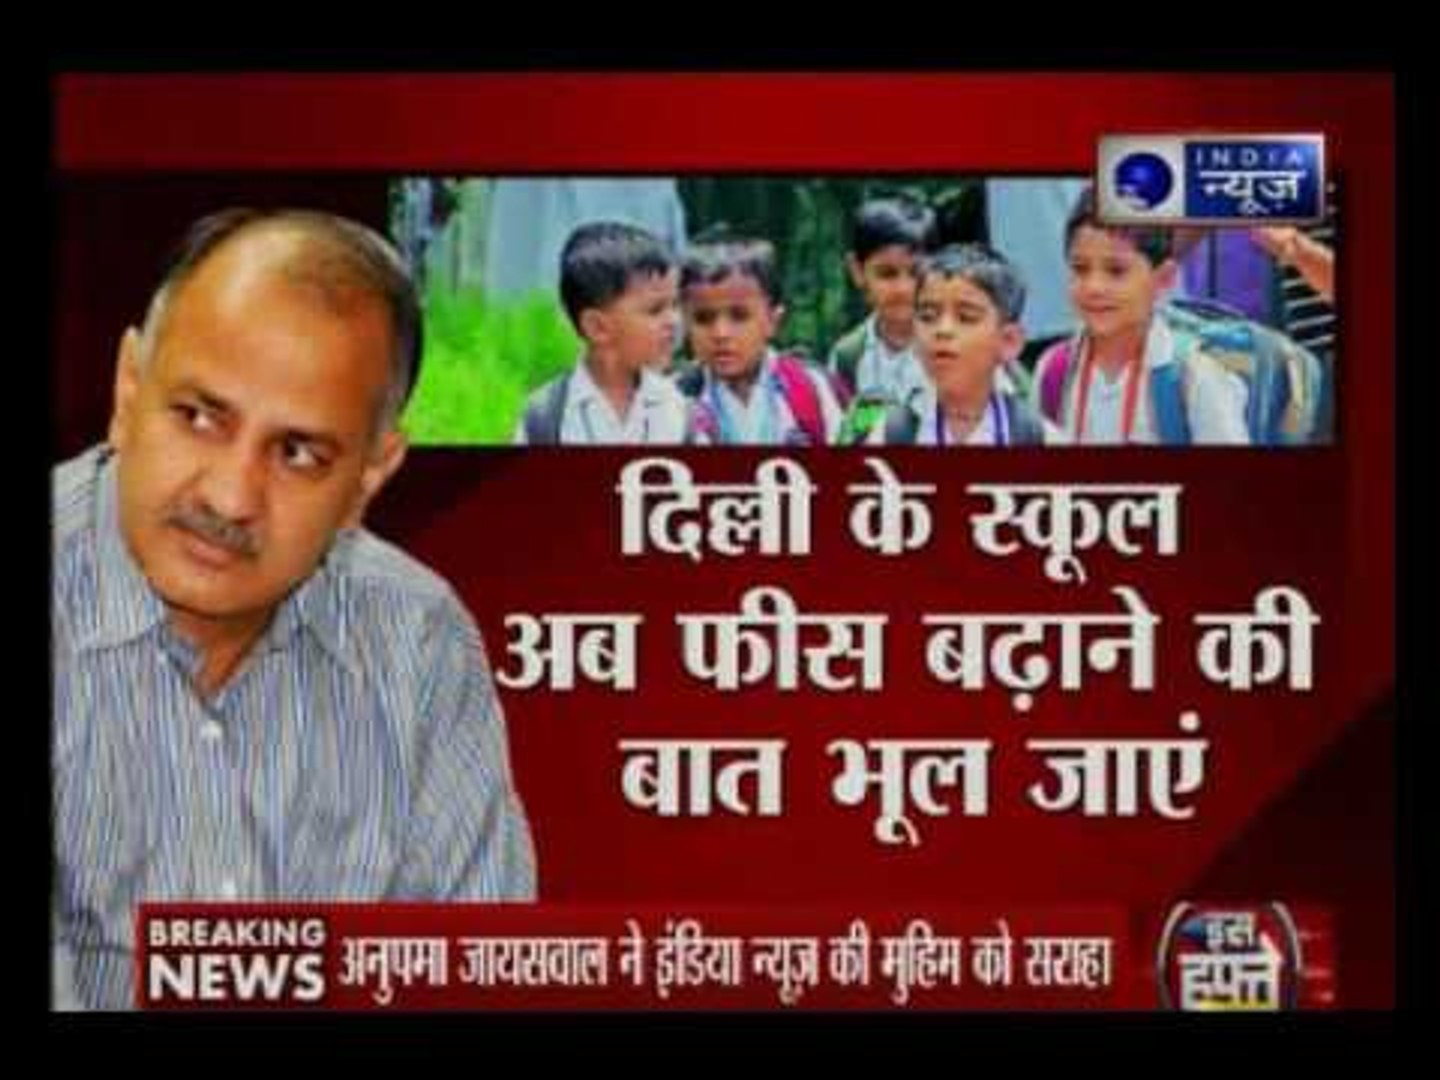 India News Impact over school fees row— Manish Sisodia speaks exclusively to India News